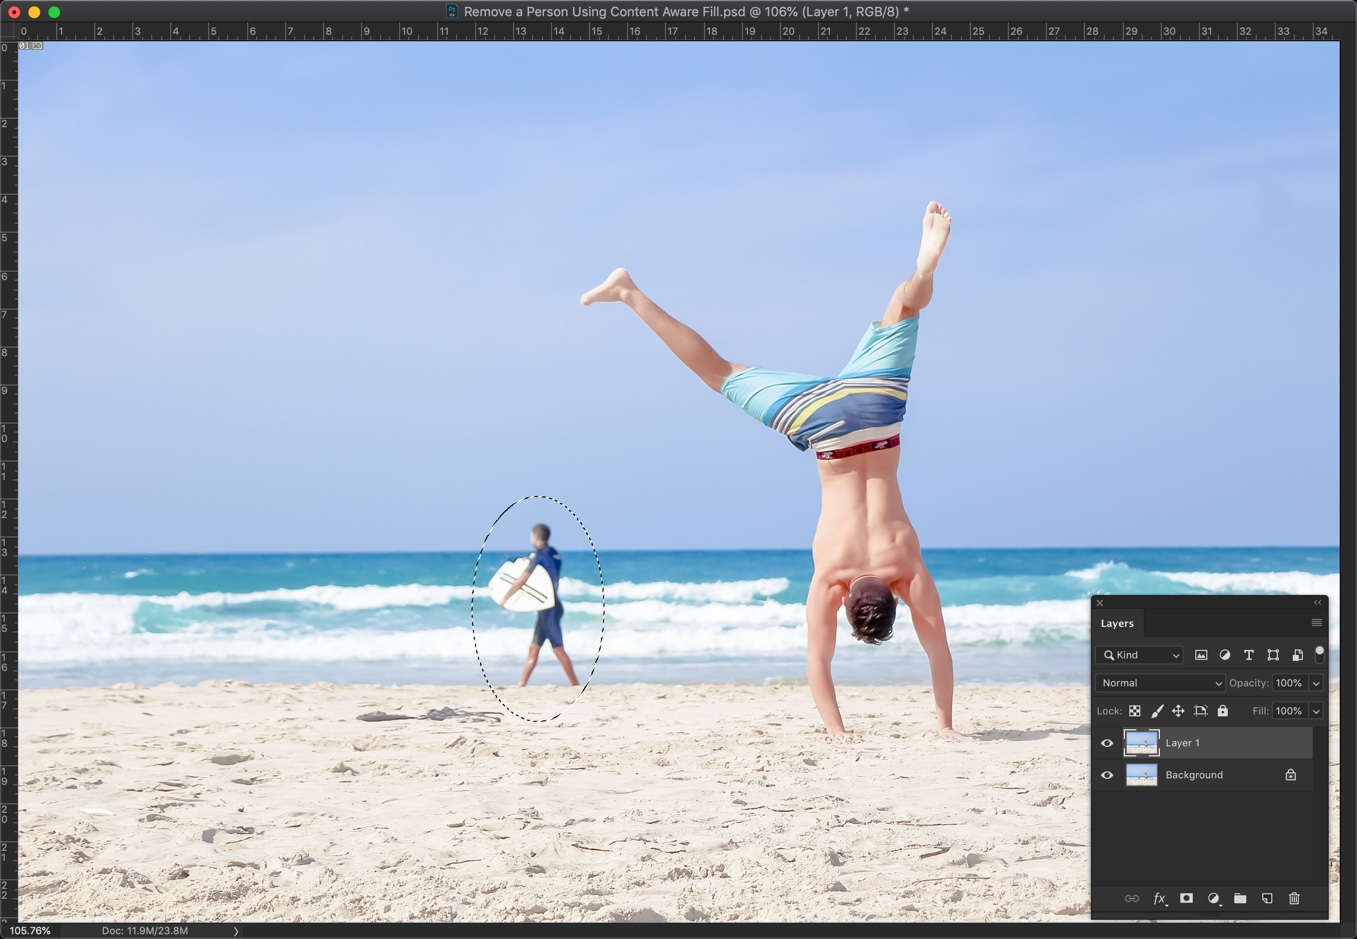 4-2 - [Pro Hack] Use Content Aware Fill to Remove a Person in Photoshop